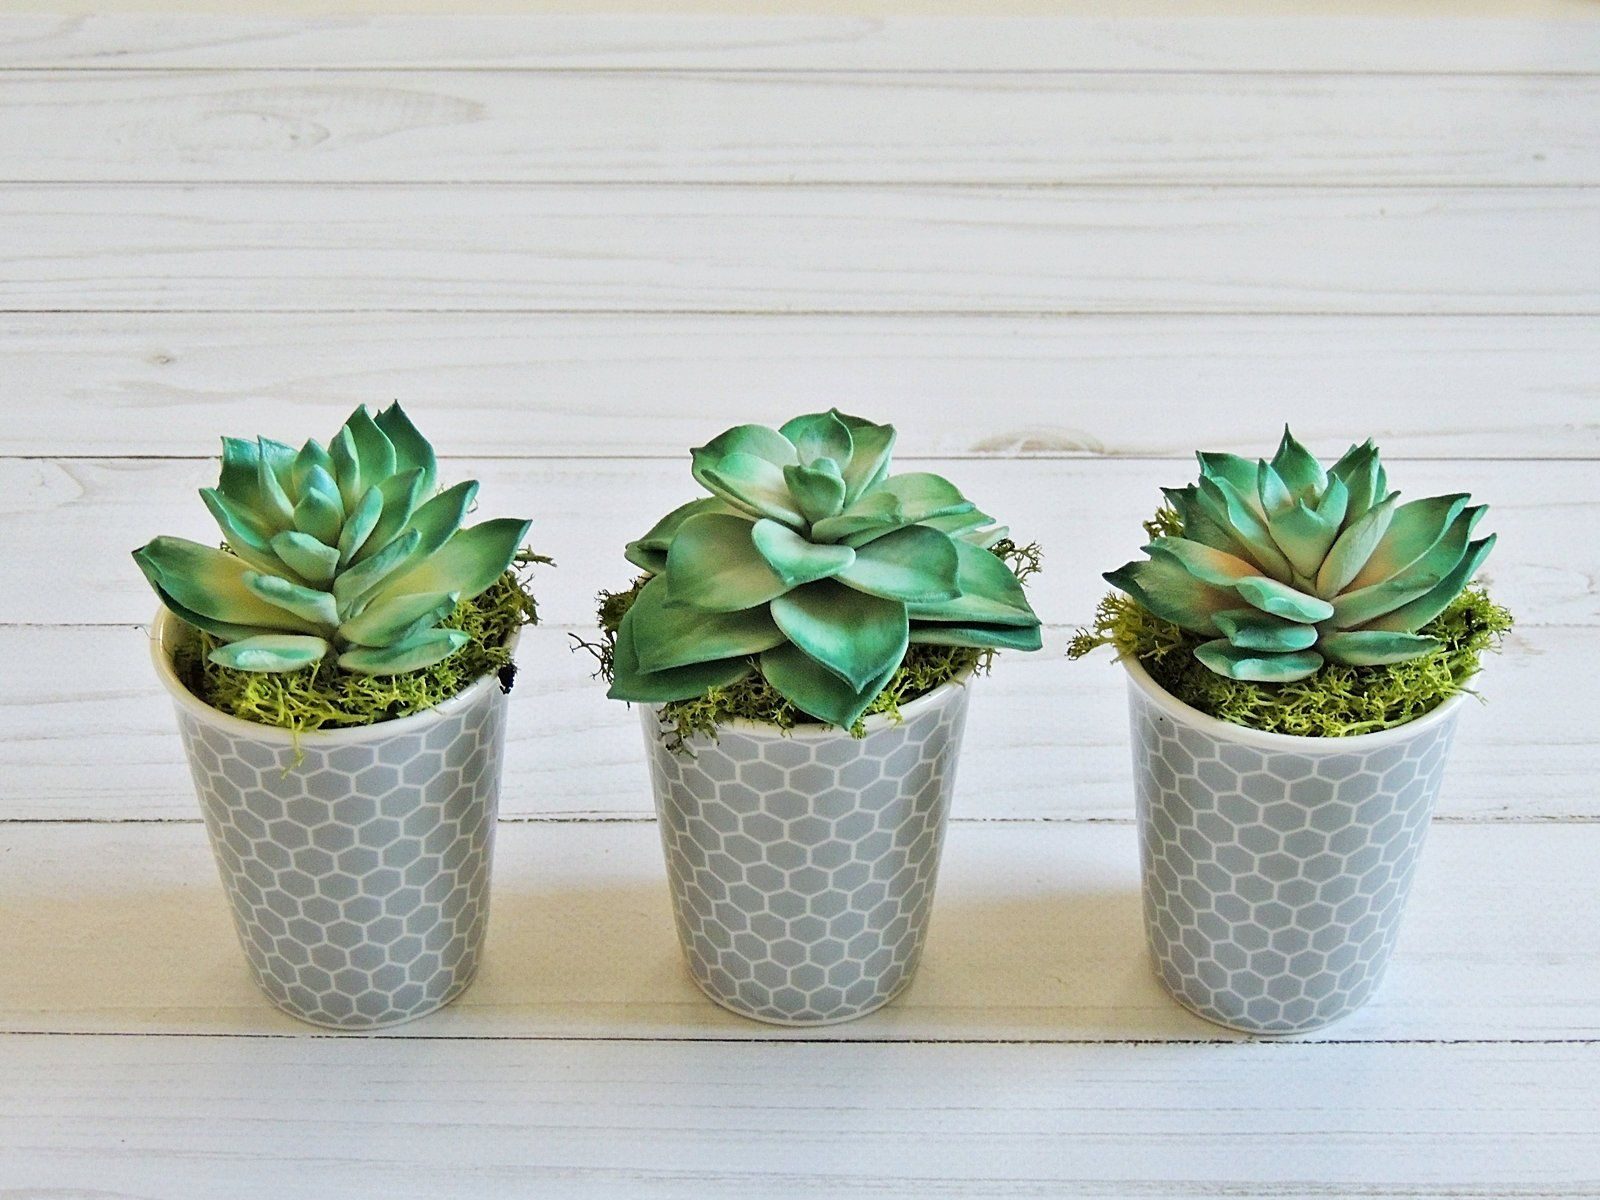 Arredare Con Piante Grasse jars with hand-made succulent plants artificial flowers for